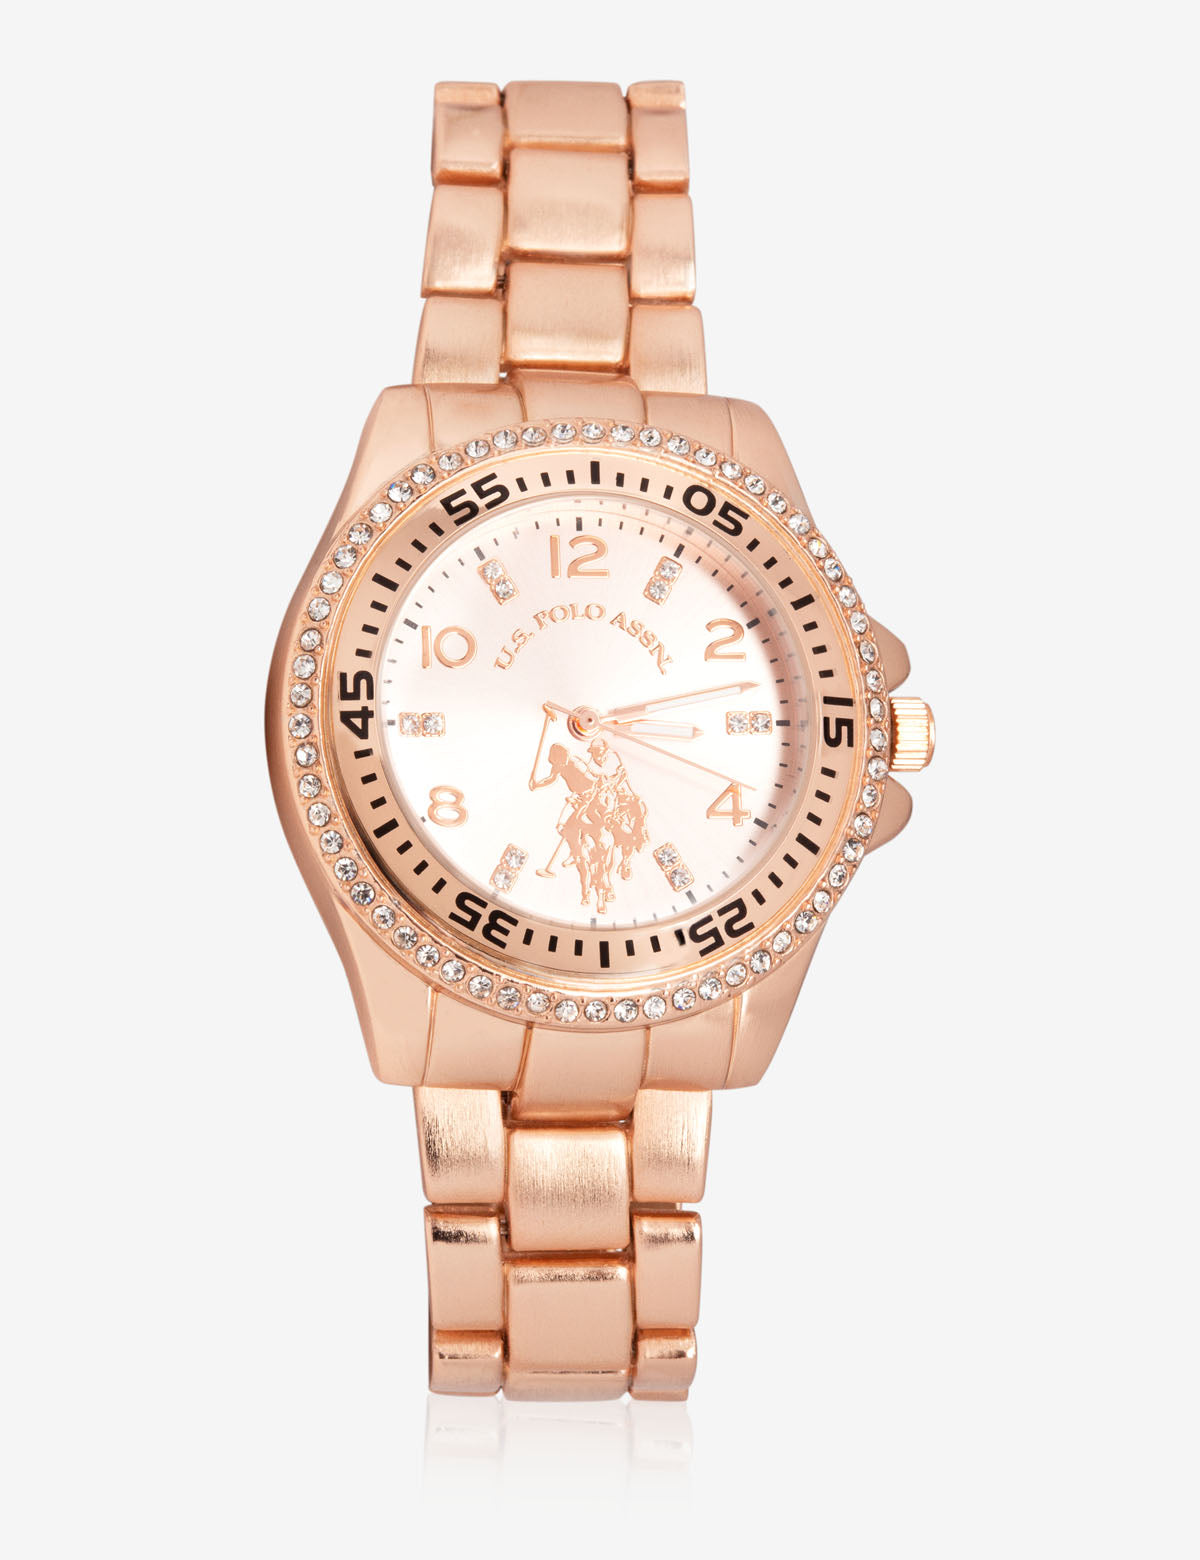 USPA WOMEN'S ROSE GOLD & RHINESTONE STUDDED WATCH